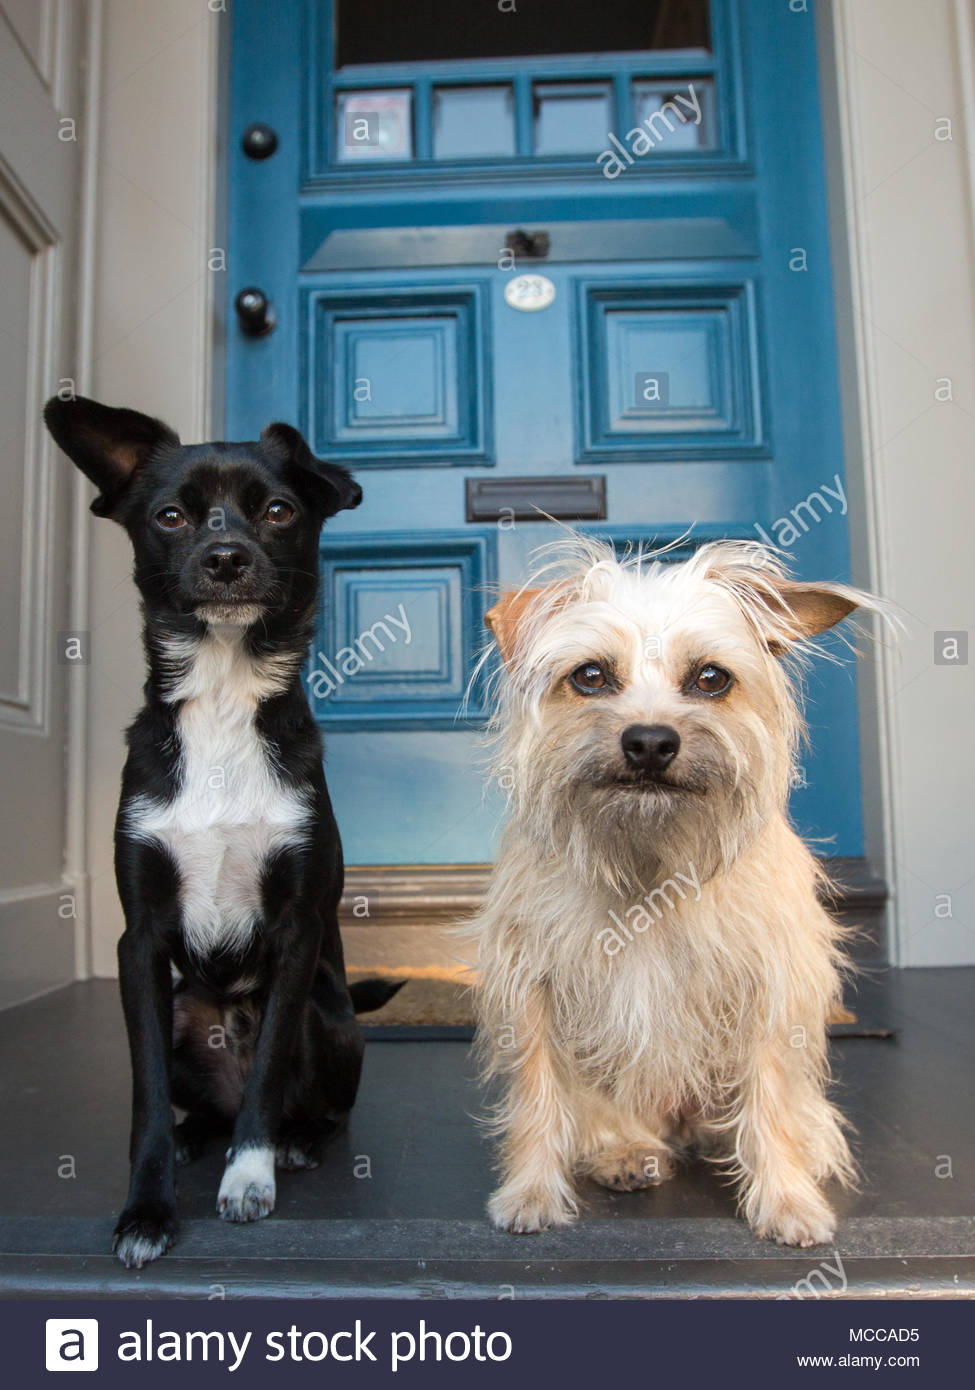 Two small dogs, one black and white the other a scruffy off-white, sitting next to each other on a front porch in front of a blue door serious express - Stock Image